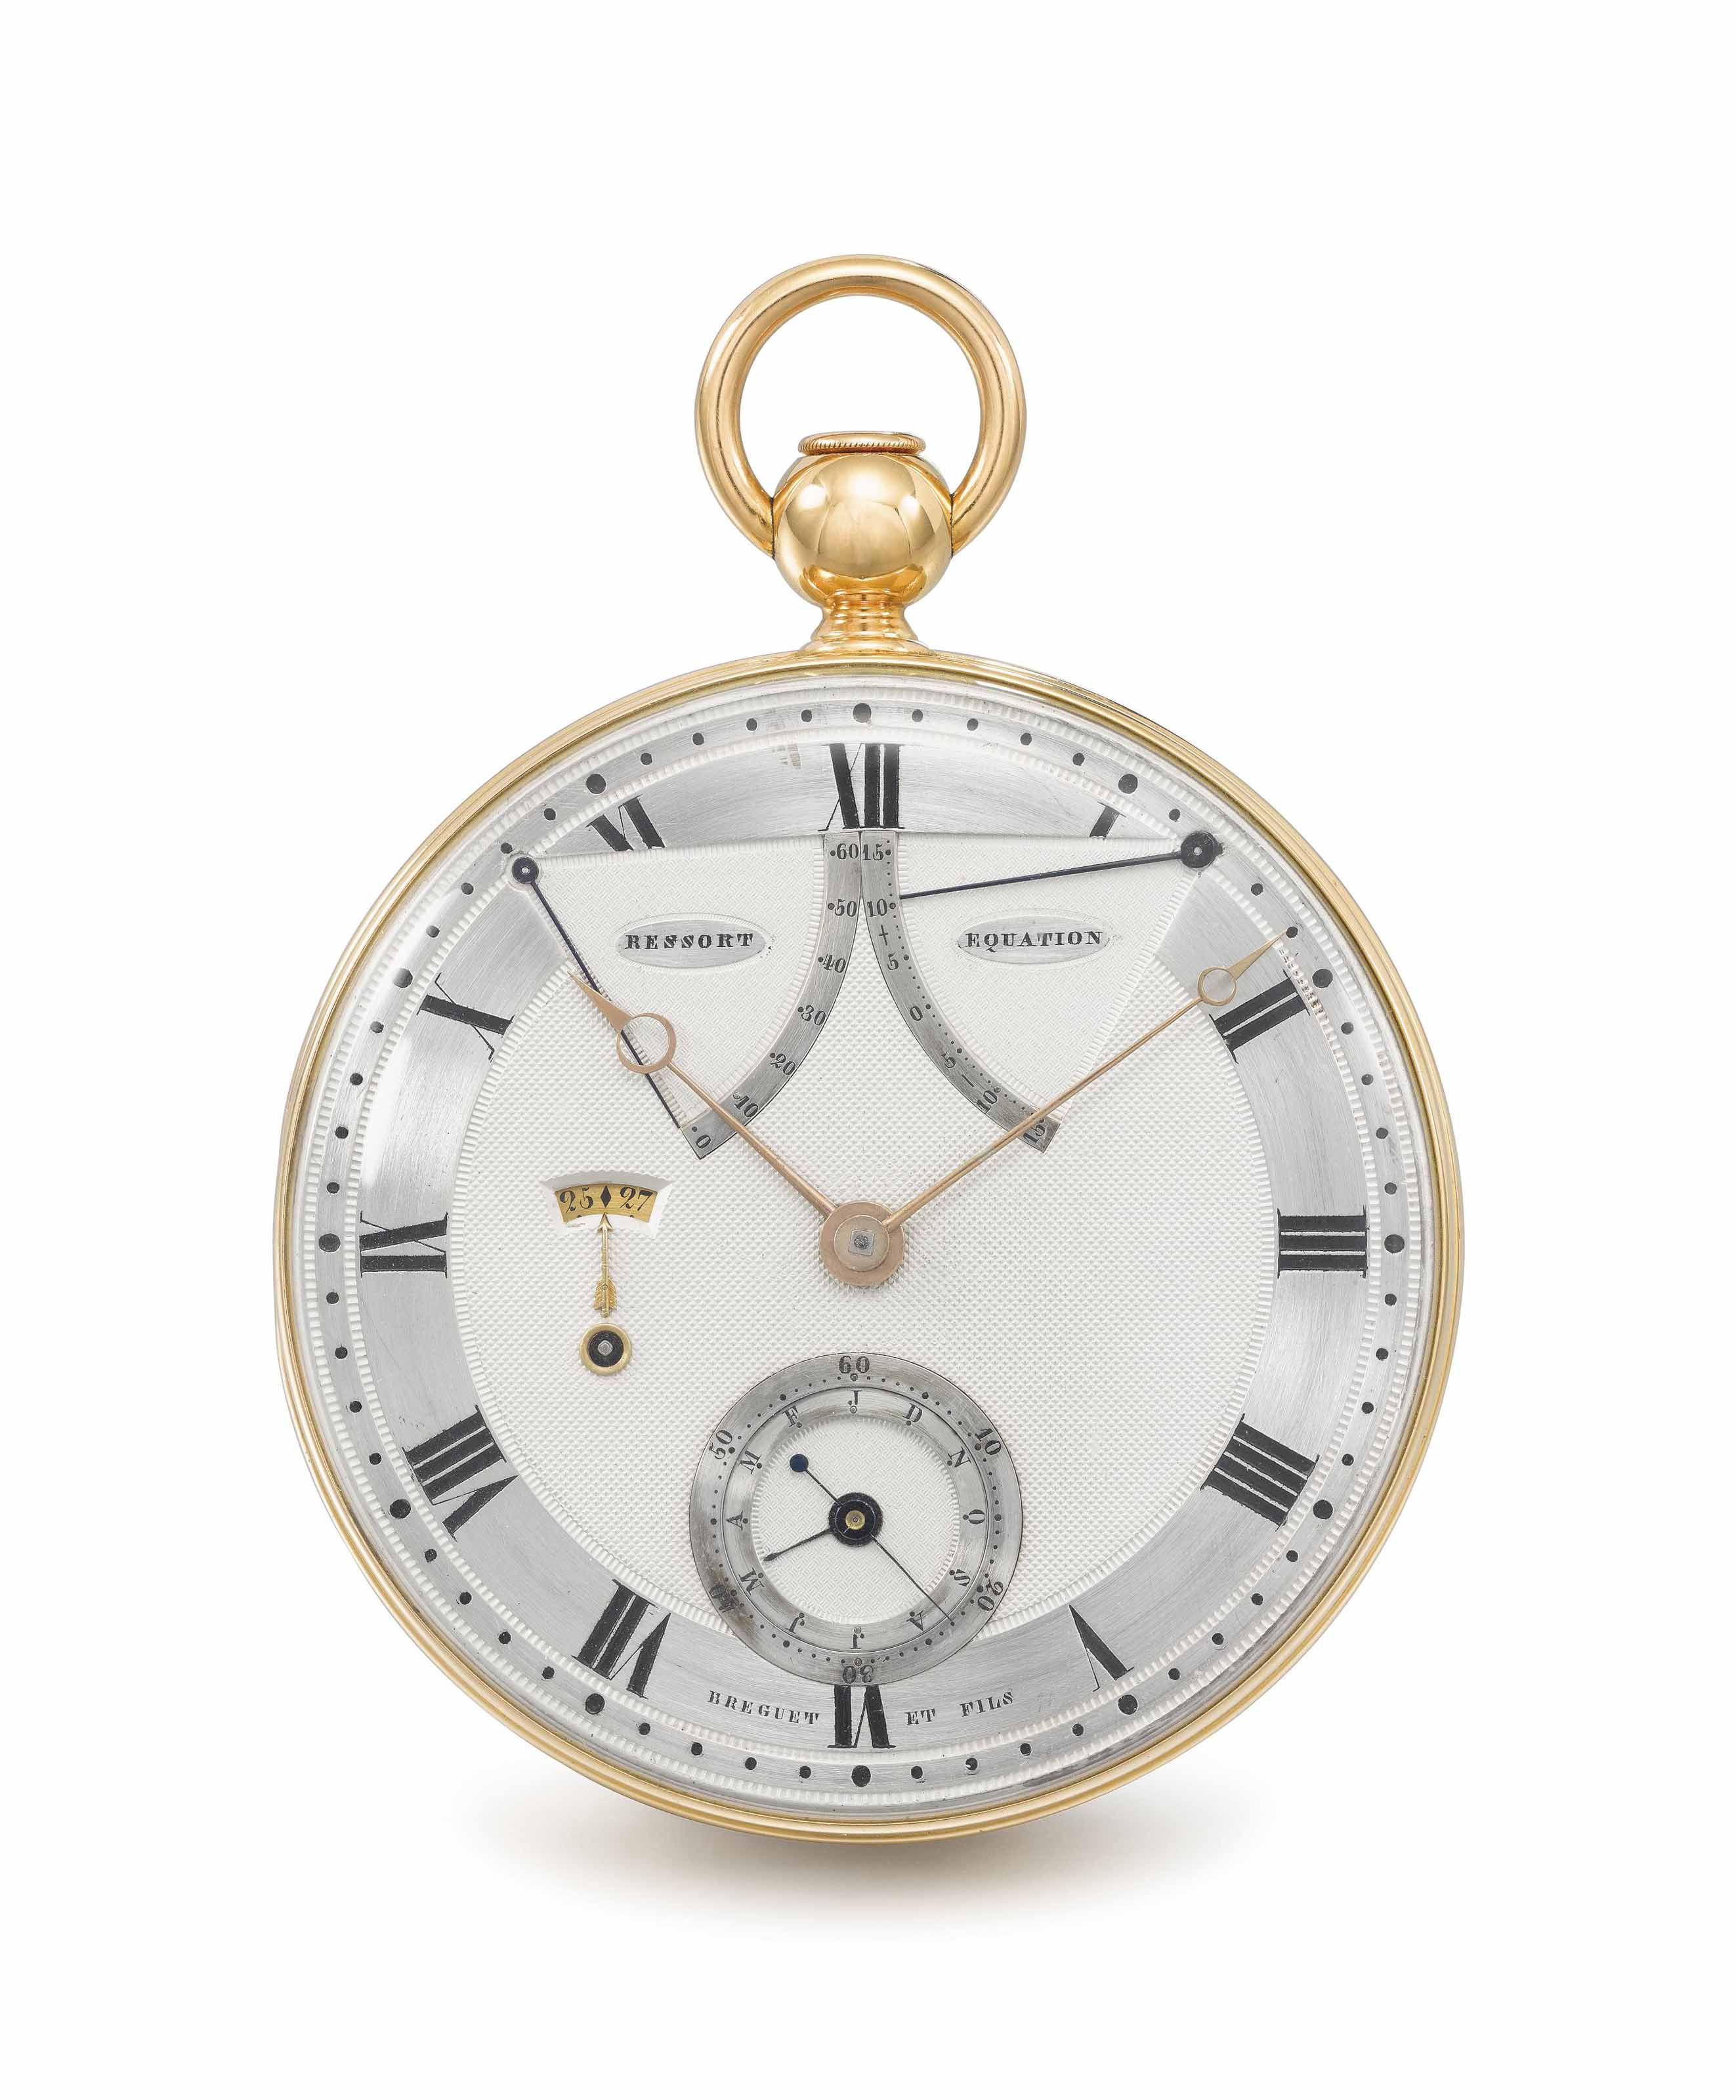 """Breguet, No. 217 """"montre perpétuelle à répétition à quantième de mois et dates et équation, échappement libre à ancre"""". An exceptional and historically important, probably unique 18K gold self-winding à toc quarter repeating lever watch with sectoral equation of time, day and month calendar and sectoral power-reserve indication, constructed on the principals of the garde-temps, in a Desoutter gold tooled red morocco fitted box No. 217"""